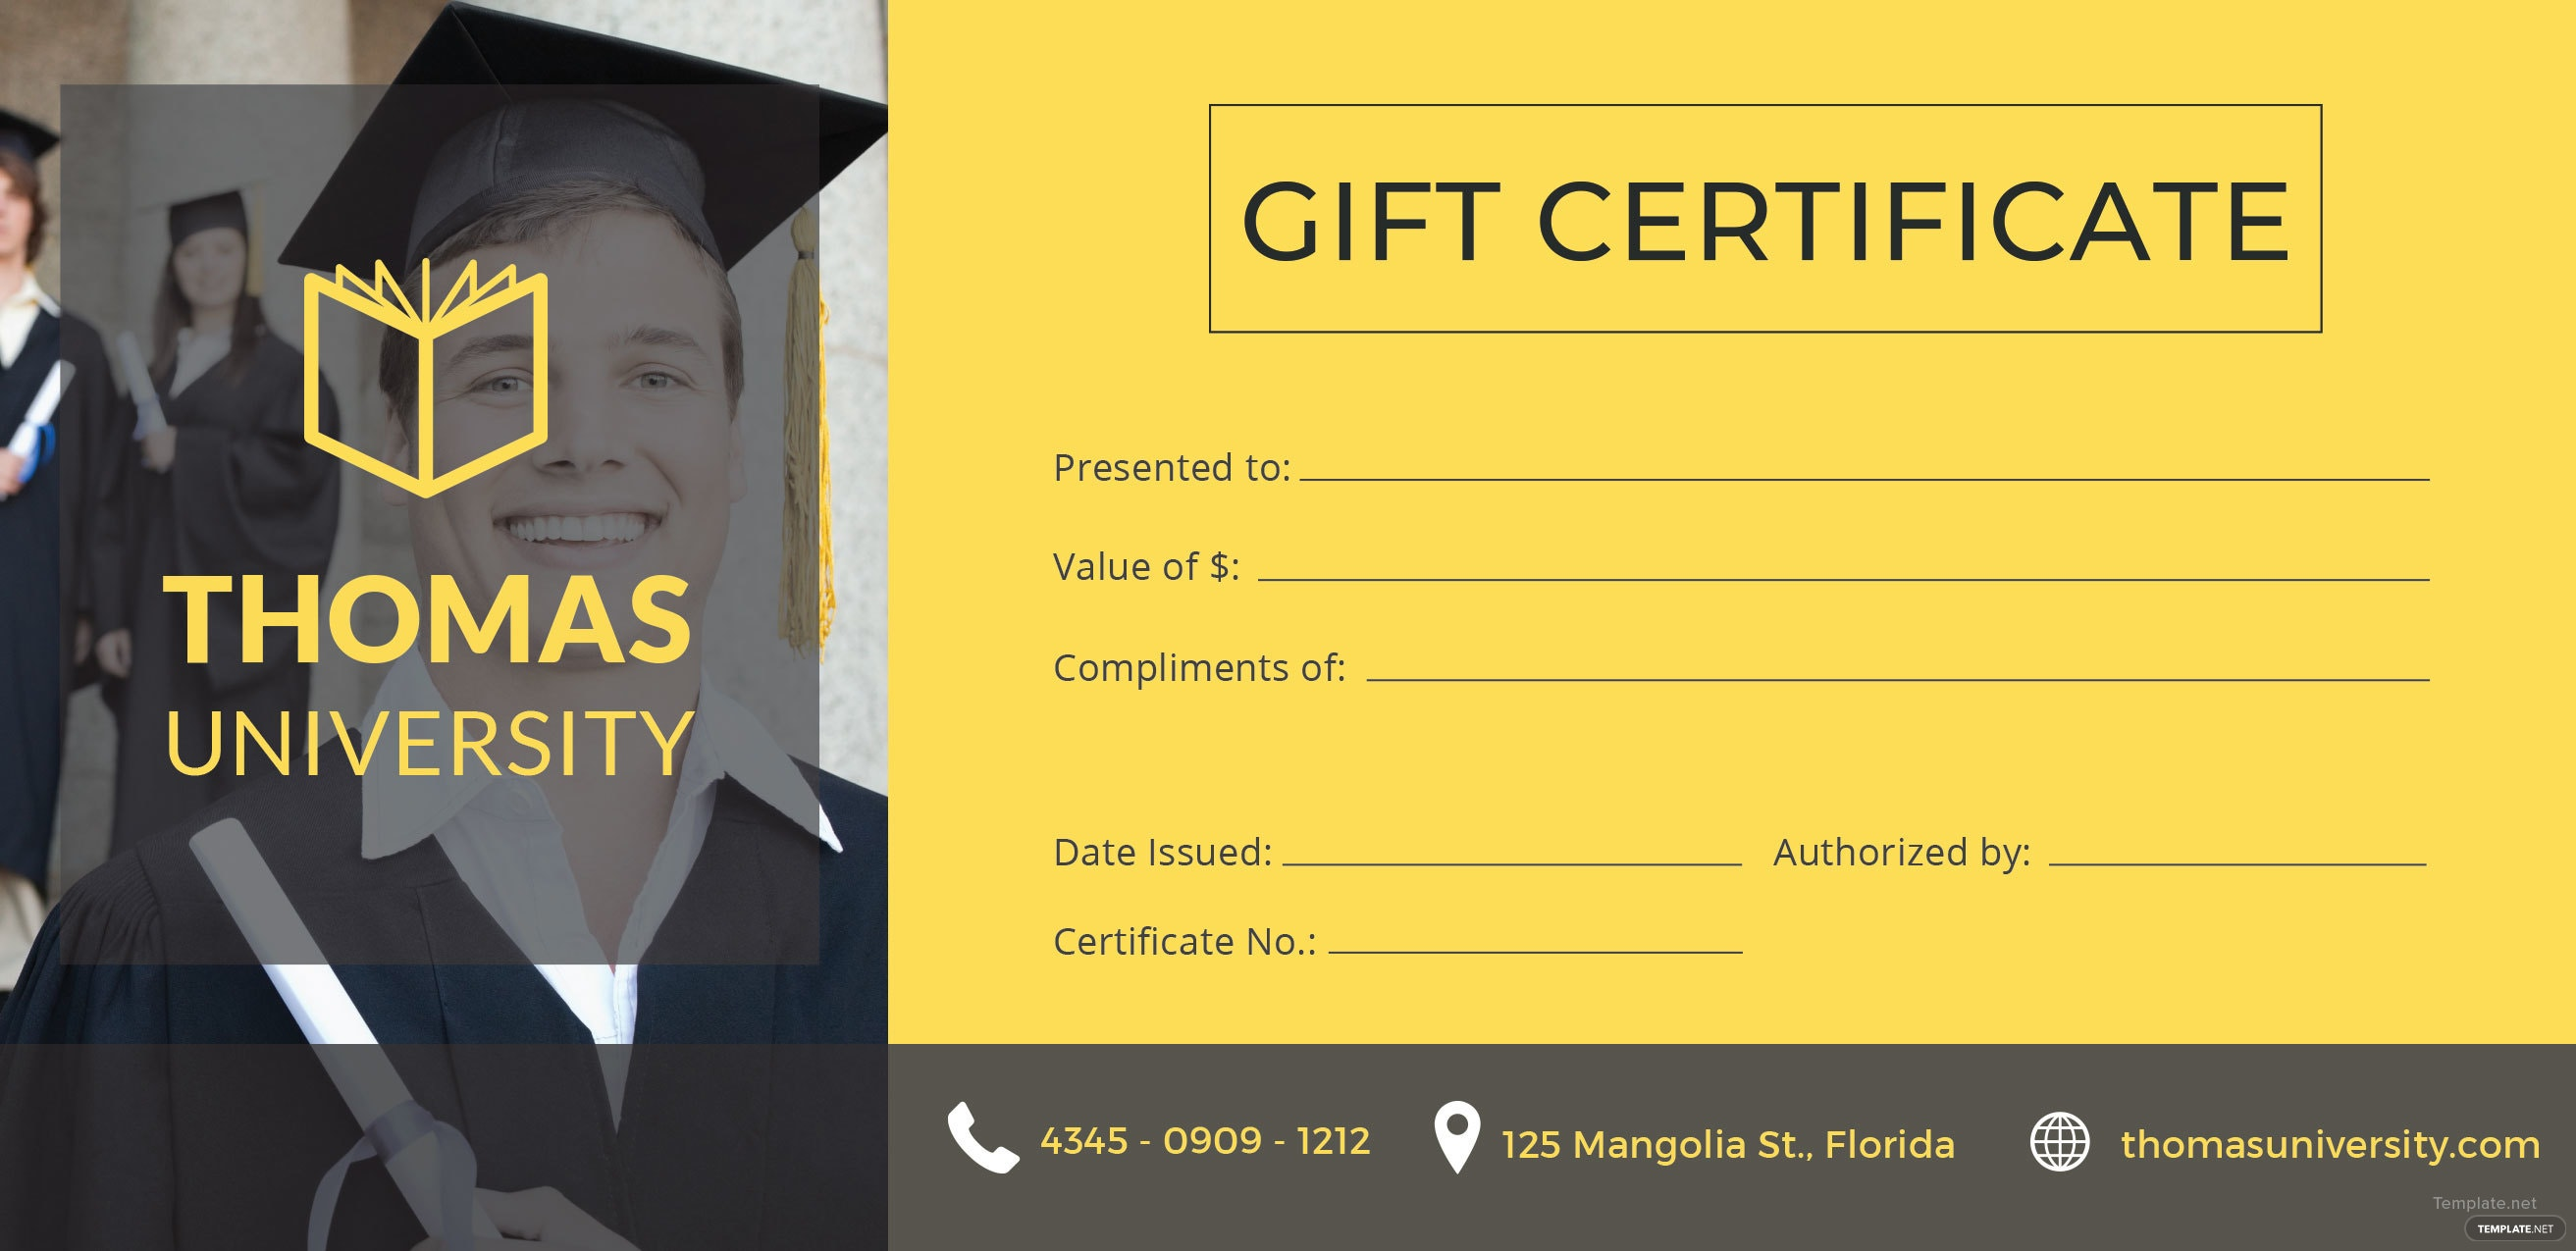 Free graduation gift certificate template in adobe illustrator graduation gift certificate template free download yelopaper